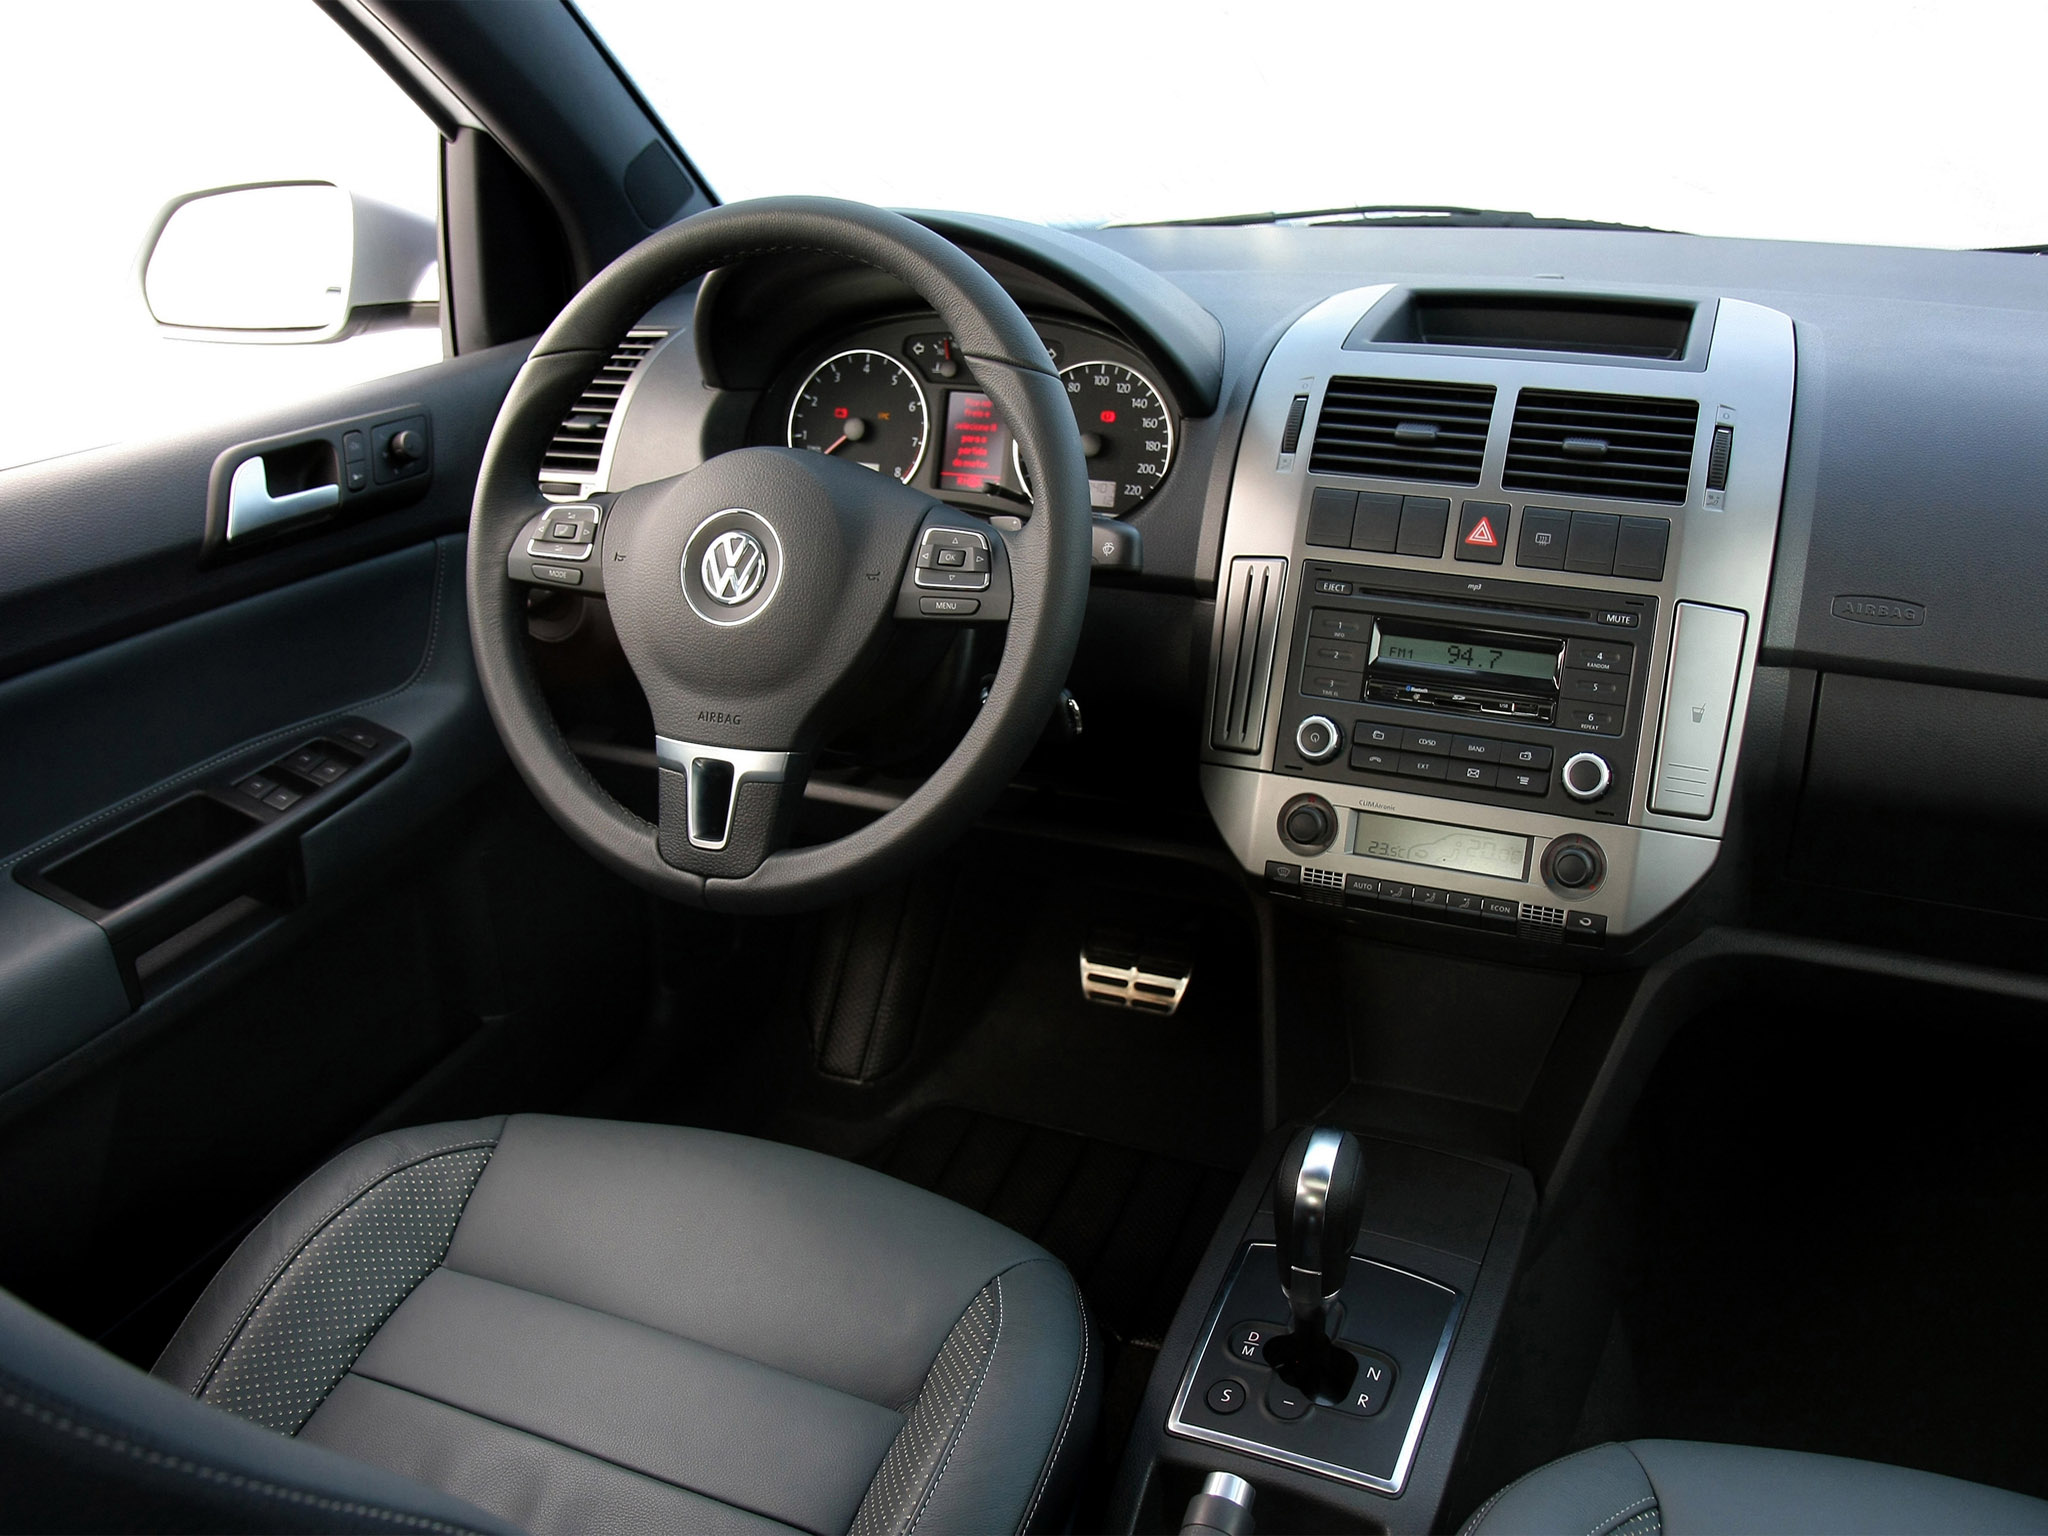 volkswagen polo 5 door brazil ivf 2009 volkswagen polo 5 door brazil ivf 2009 photo 01 car in. Black Bedroom Furniture Sets. Home Design Ideas